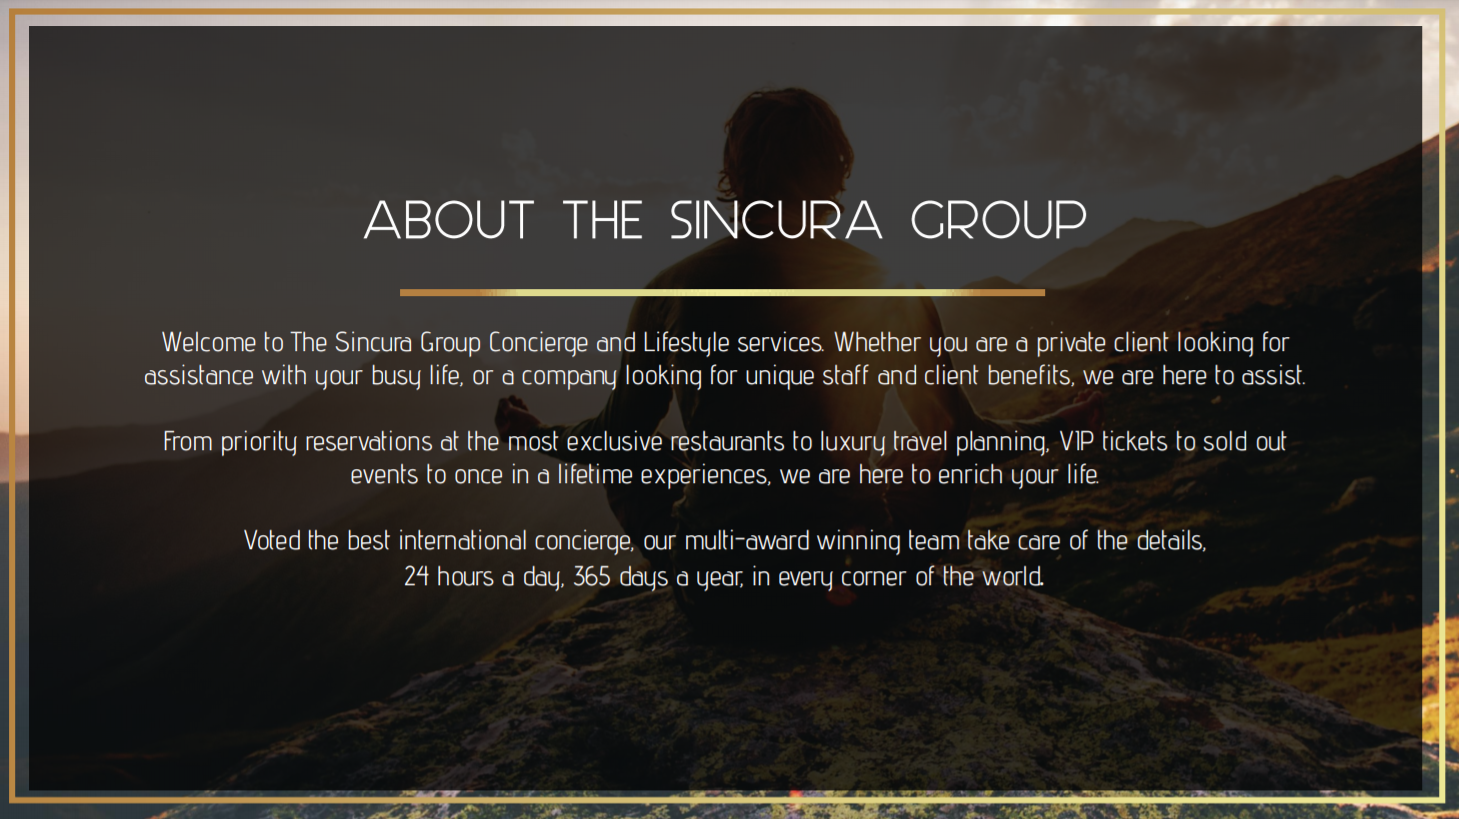 sincura media pack about the sincura group